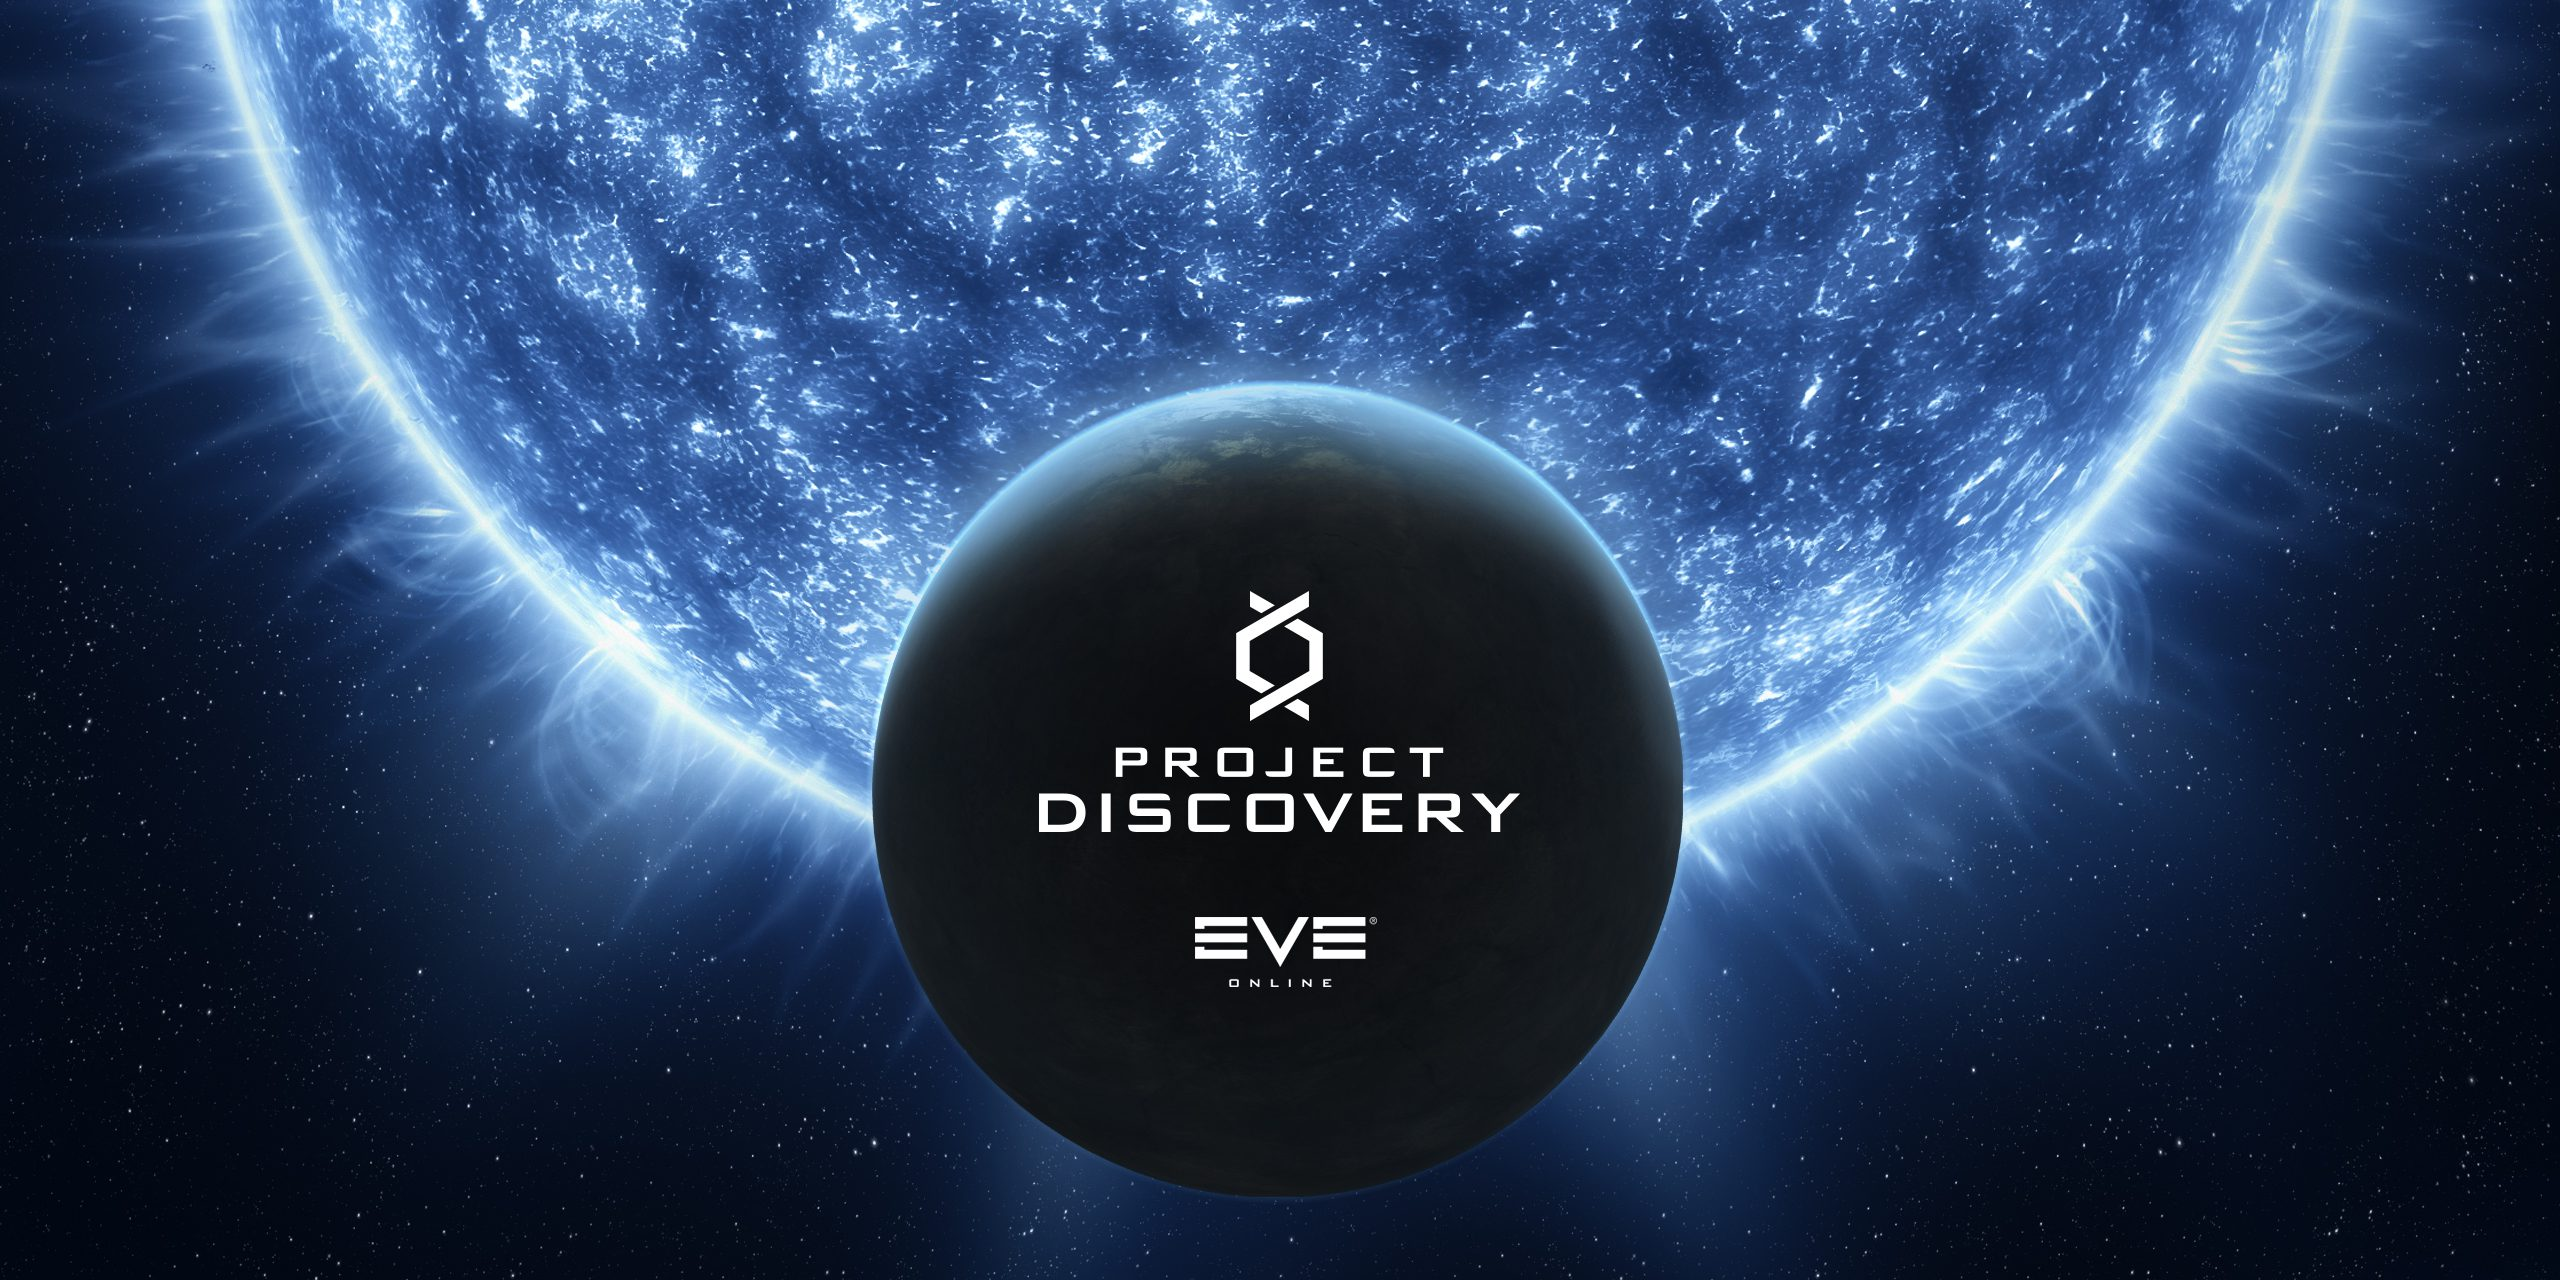 You Can Help The Search For Real Planets In EVE Online